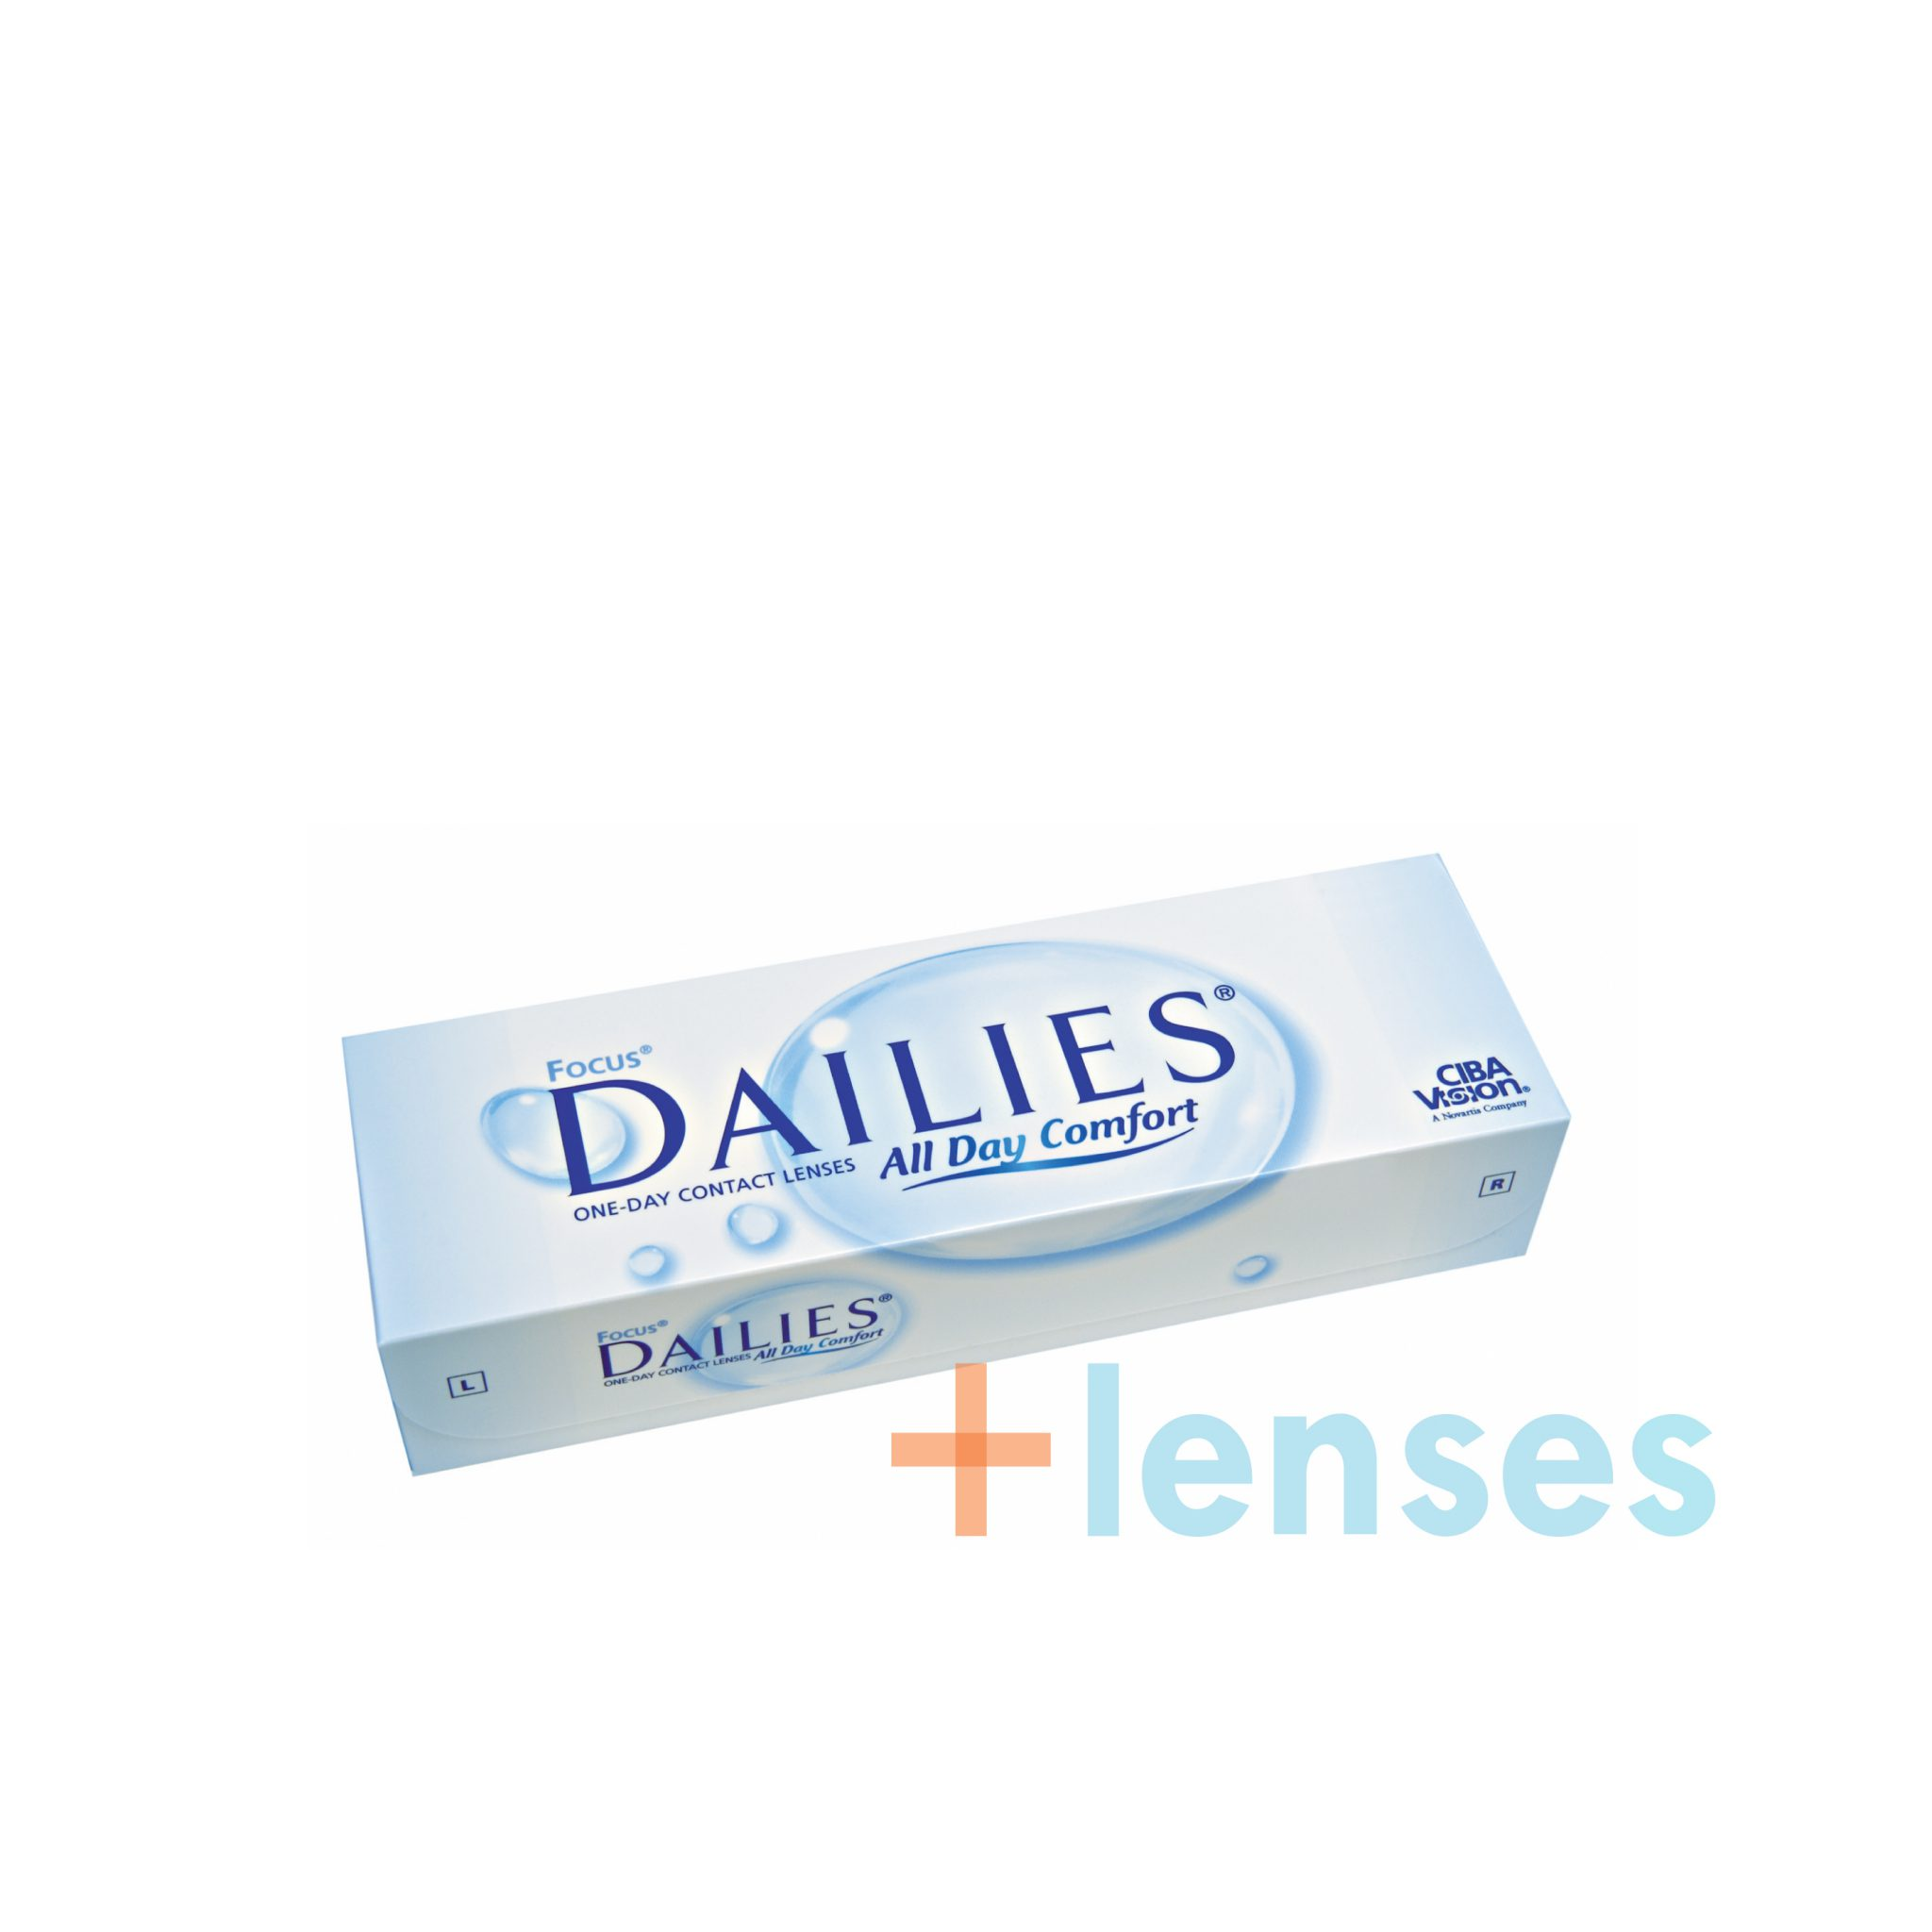 contact from johnson daily and carry lenses aqua brands orlando top disposable dailies coopervision in alcon we comfort comforter fl contacts